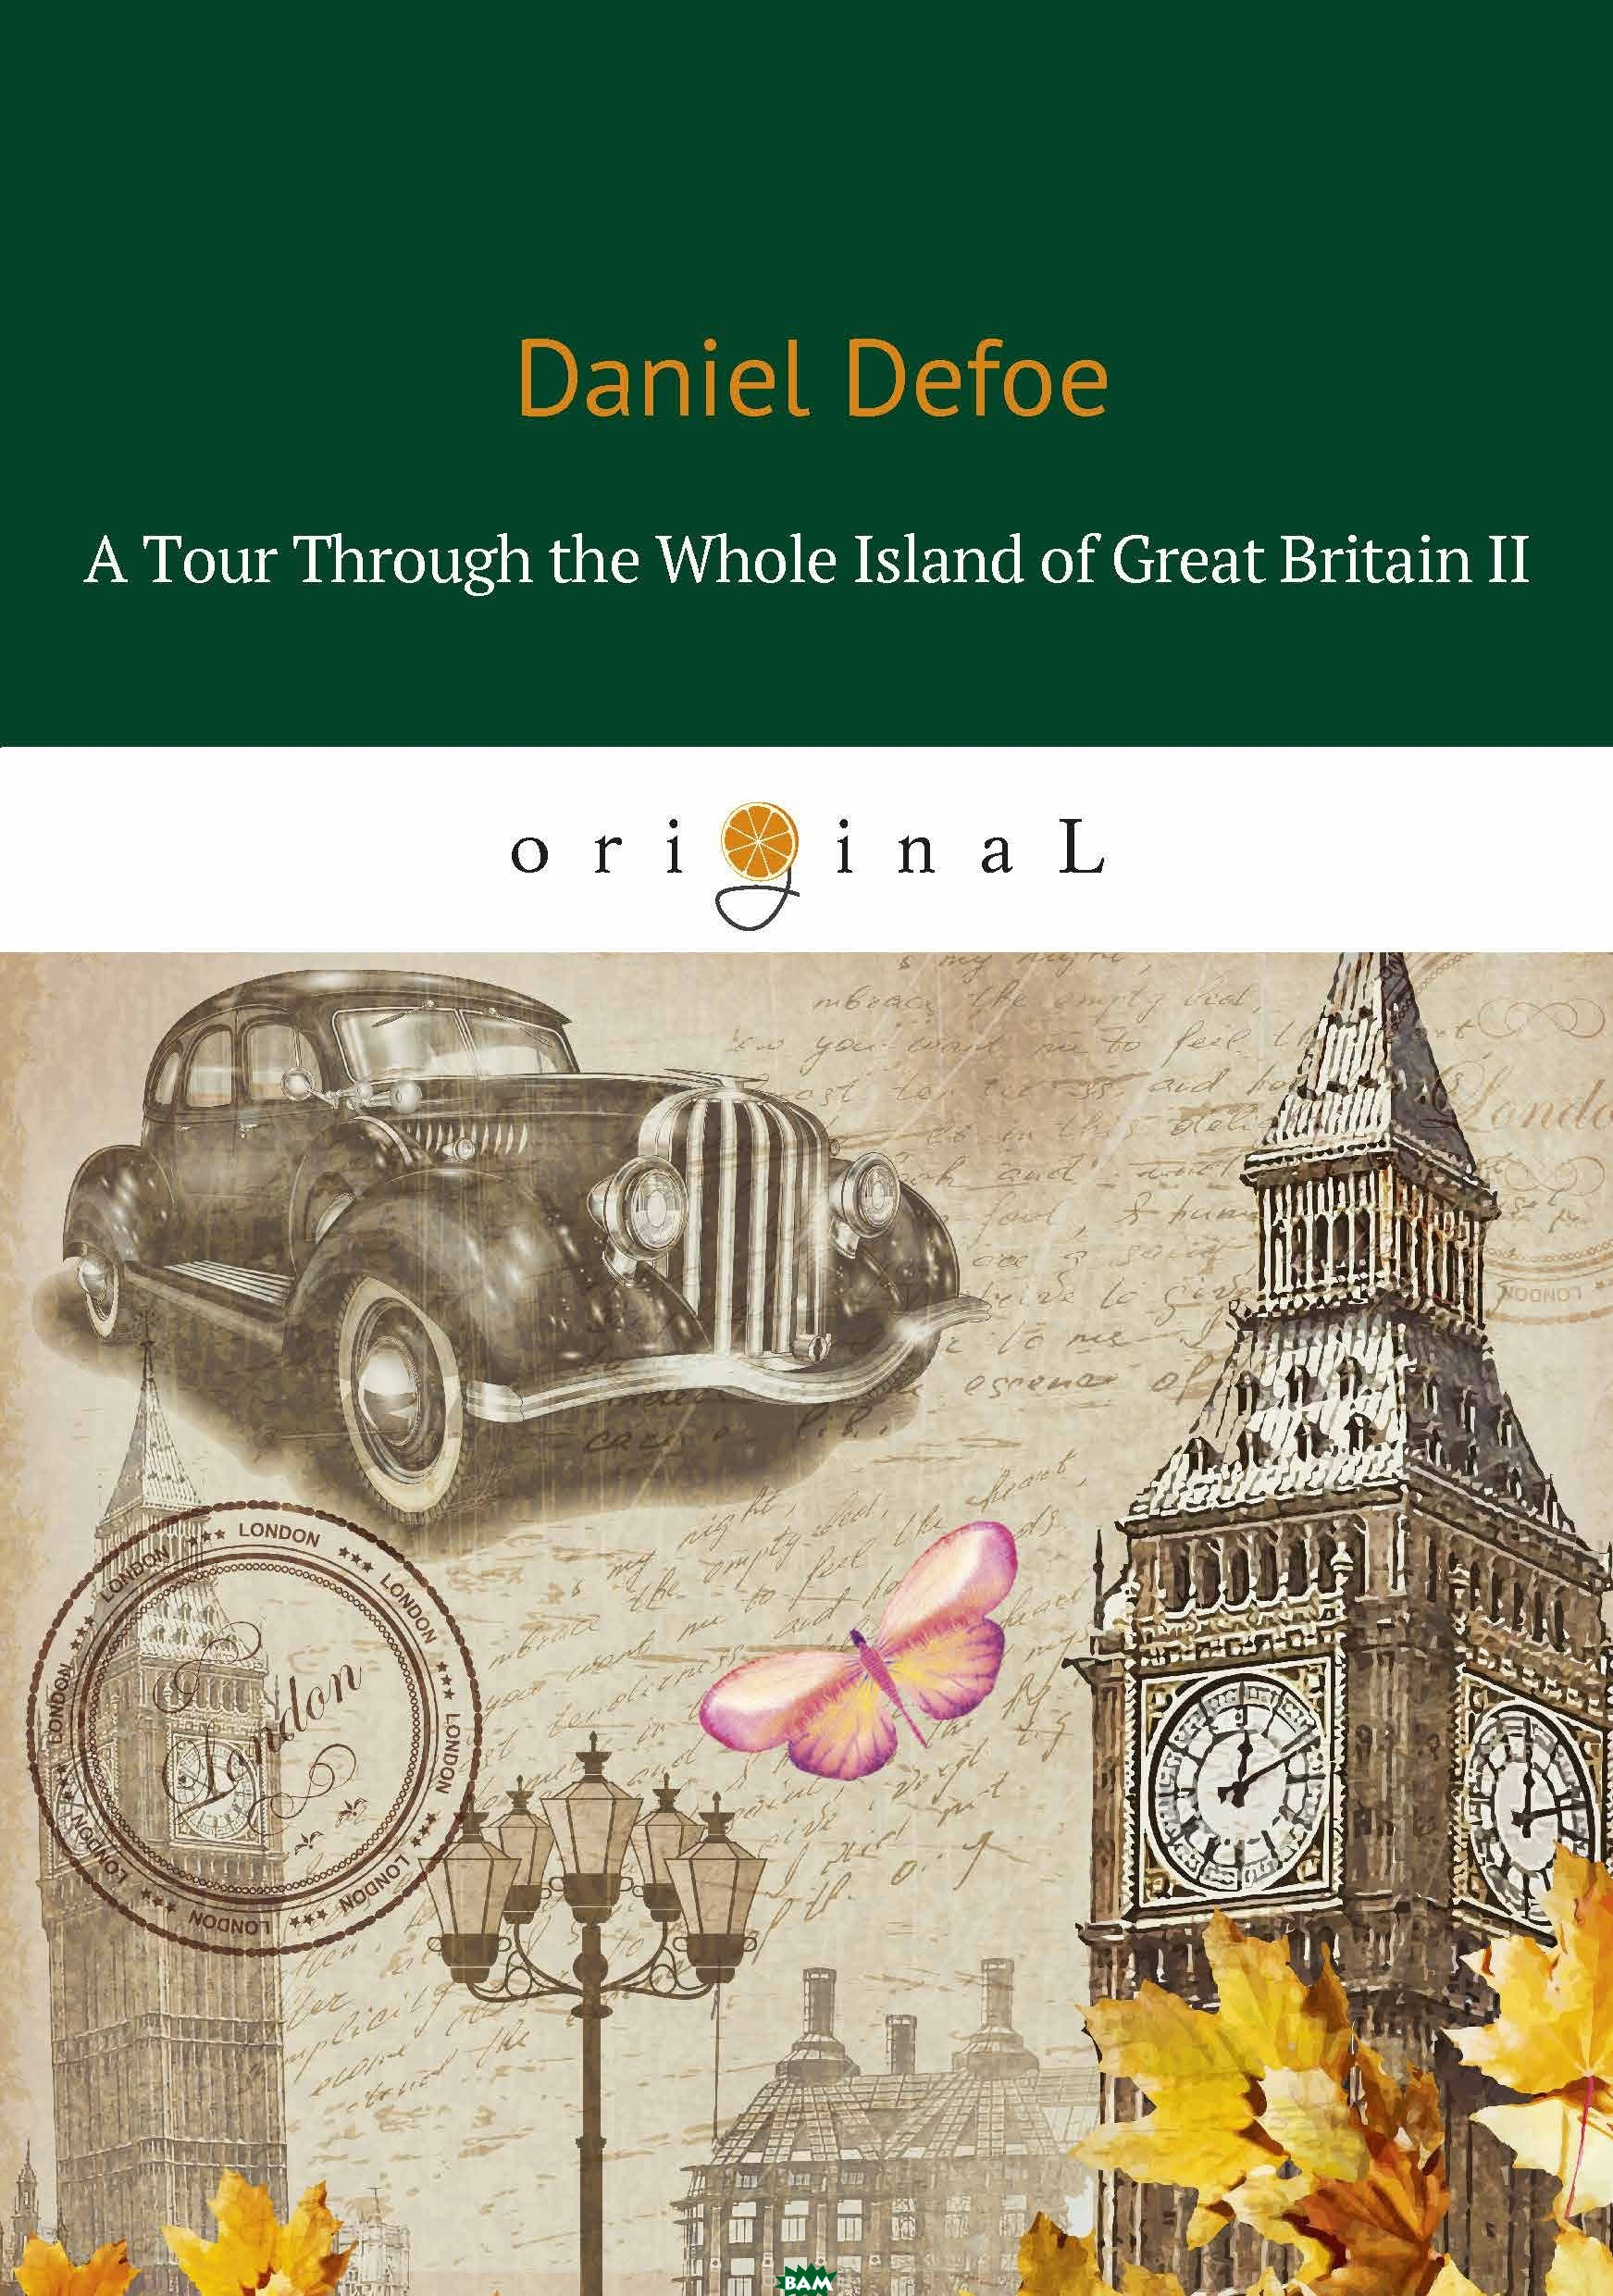 Купить A Tour Through the Whole Island of Great Britain II, T8RUGRAM, Defoe Daniel, 978-5-521-06817-3